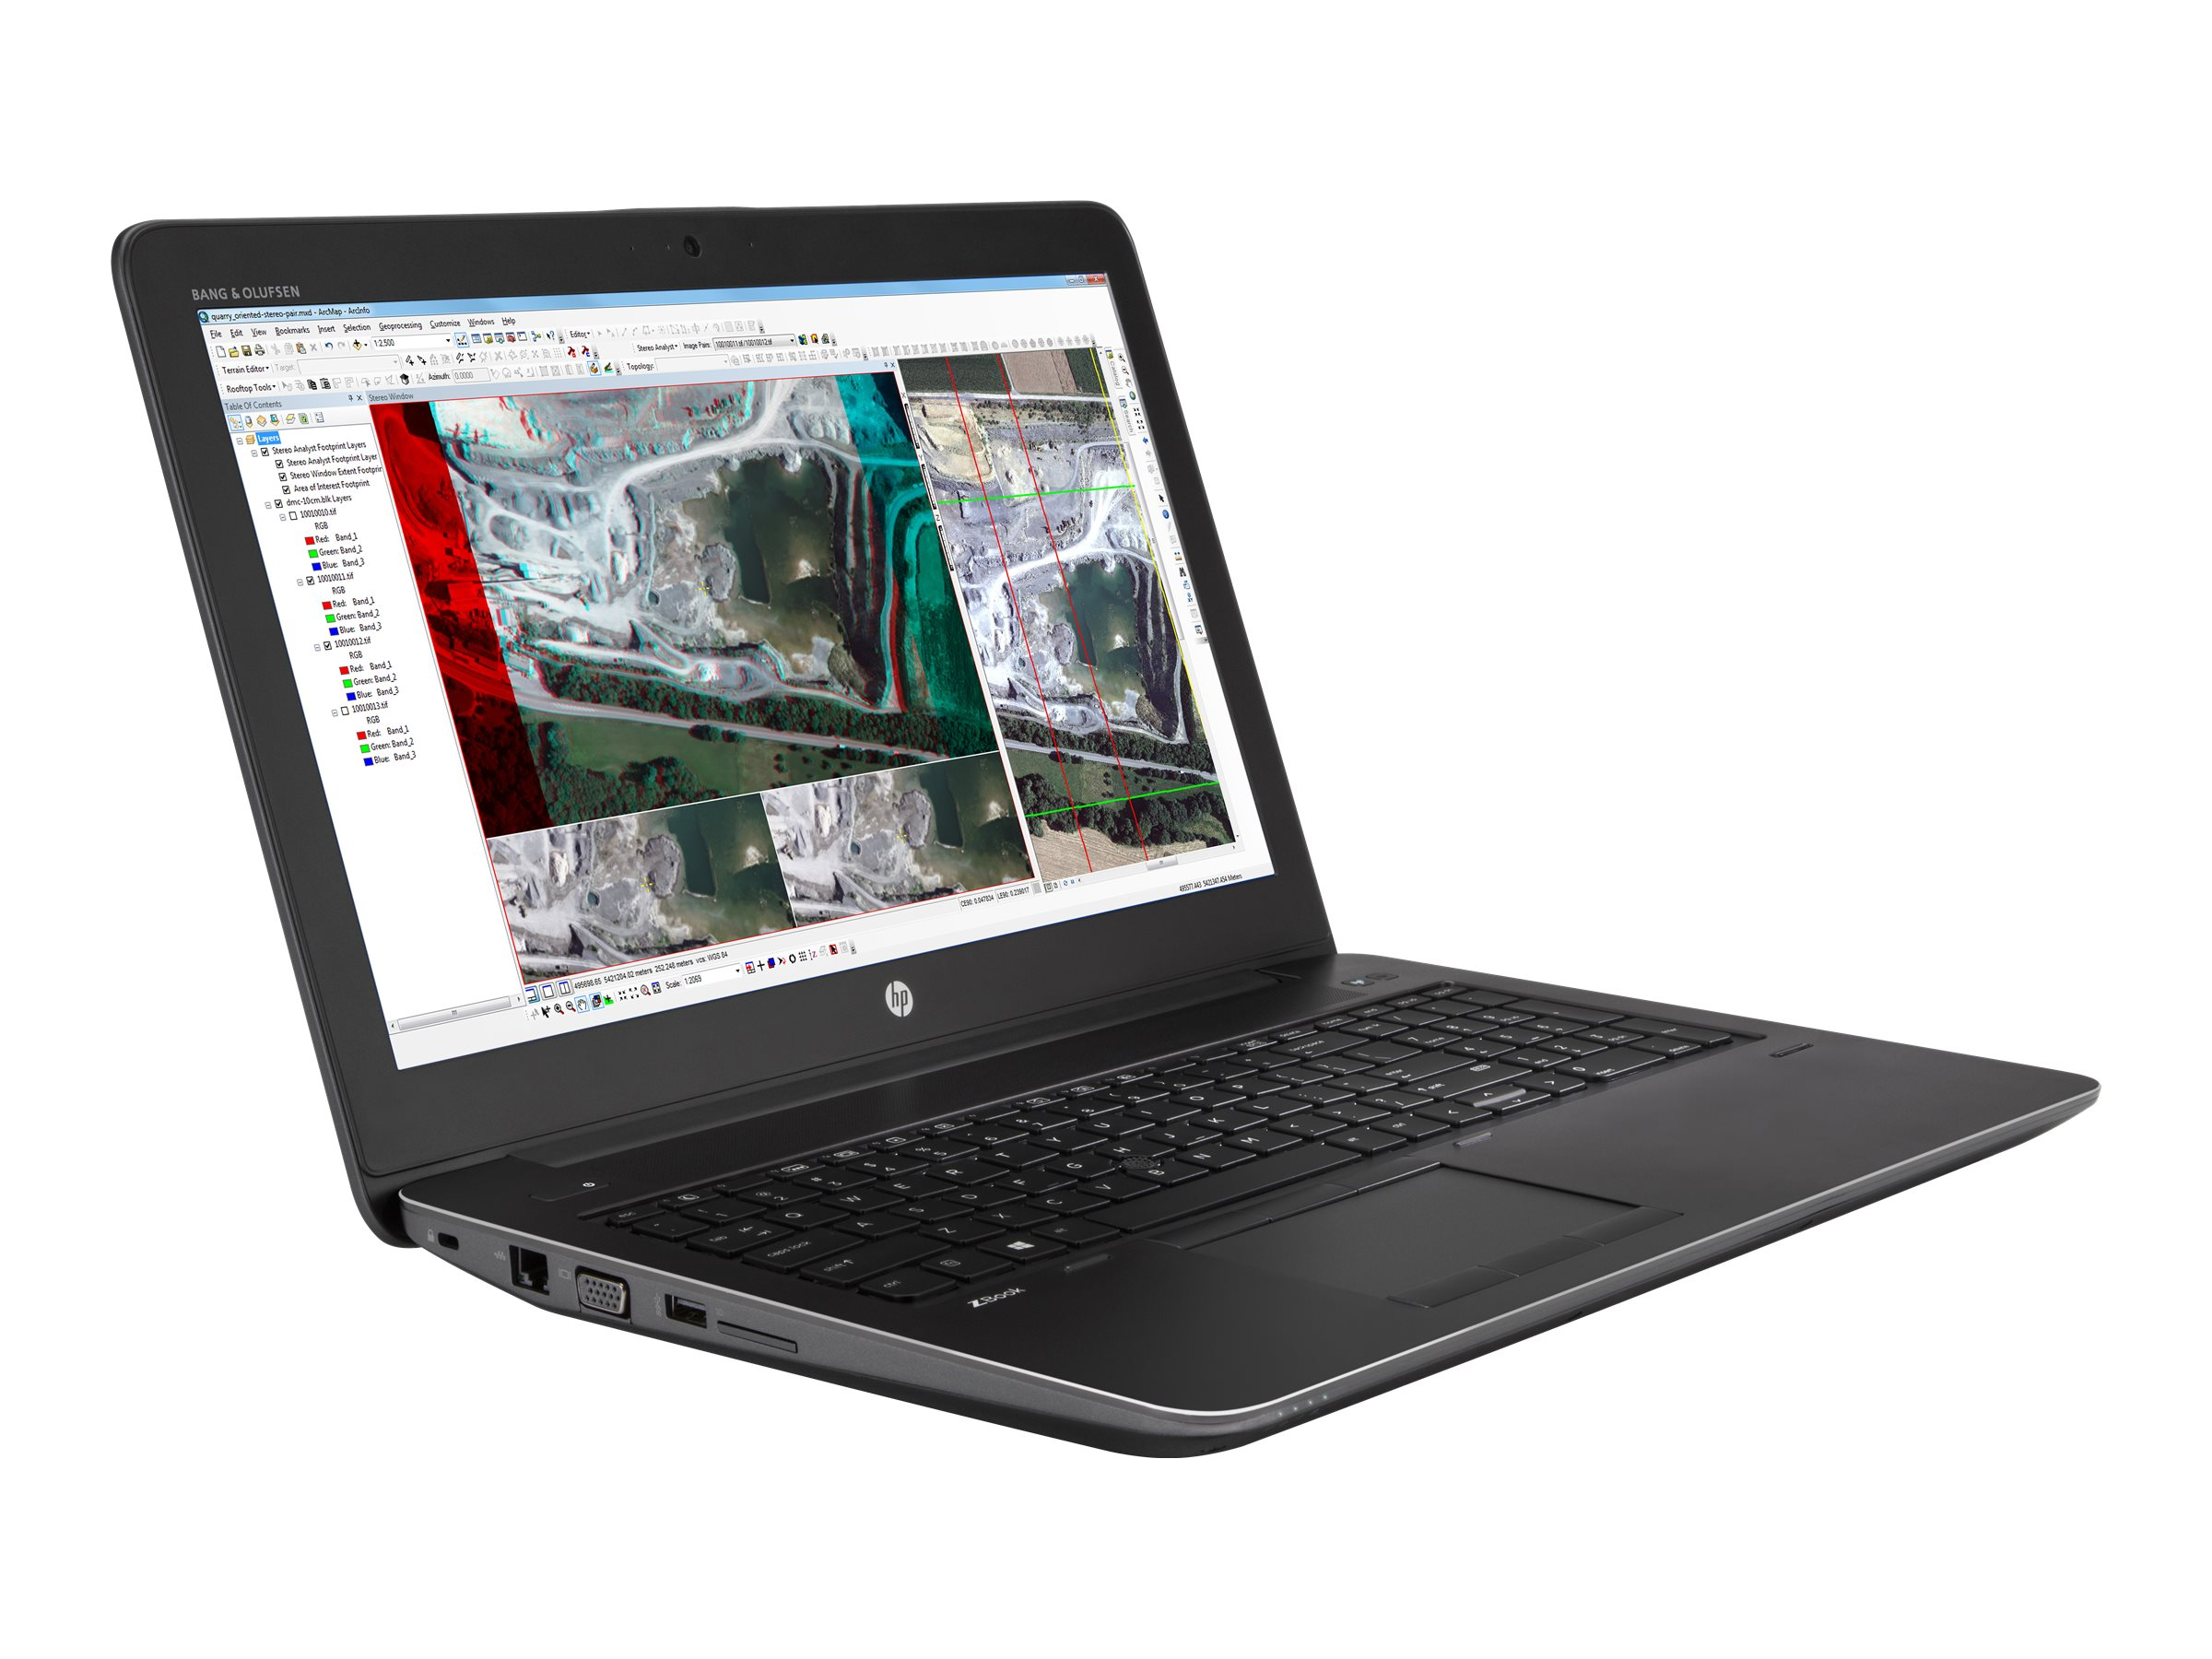 HP ZBook 15 G3 Core i7-6820HQ 2.7GHz 8GB 256GB ac BT FR WC 9C M1000M 15.6 FHD W7P64-W10P, V2W09UT#ABA